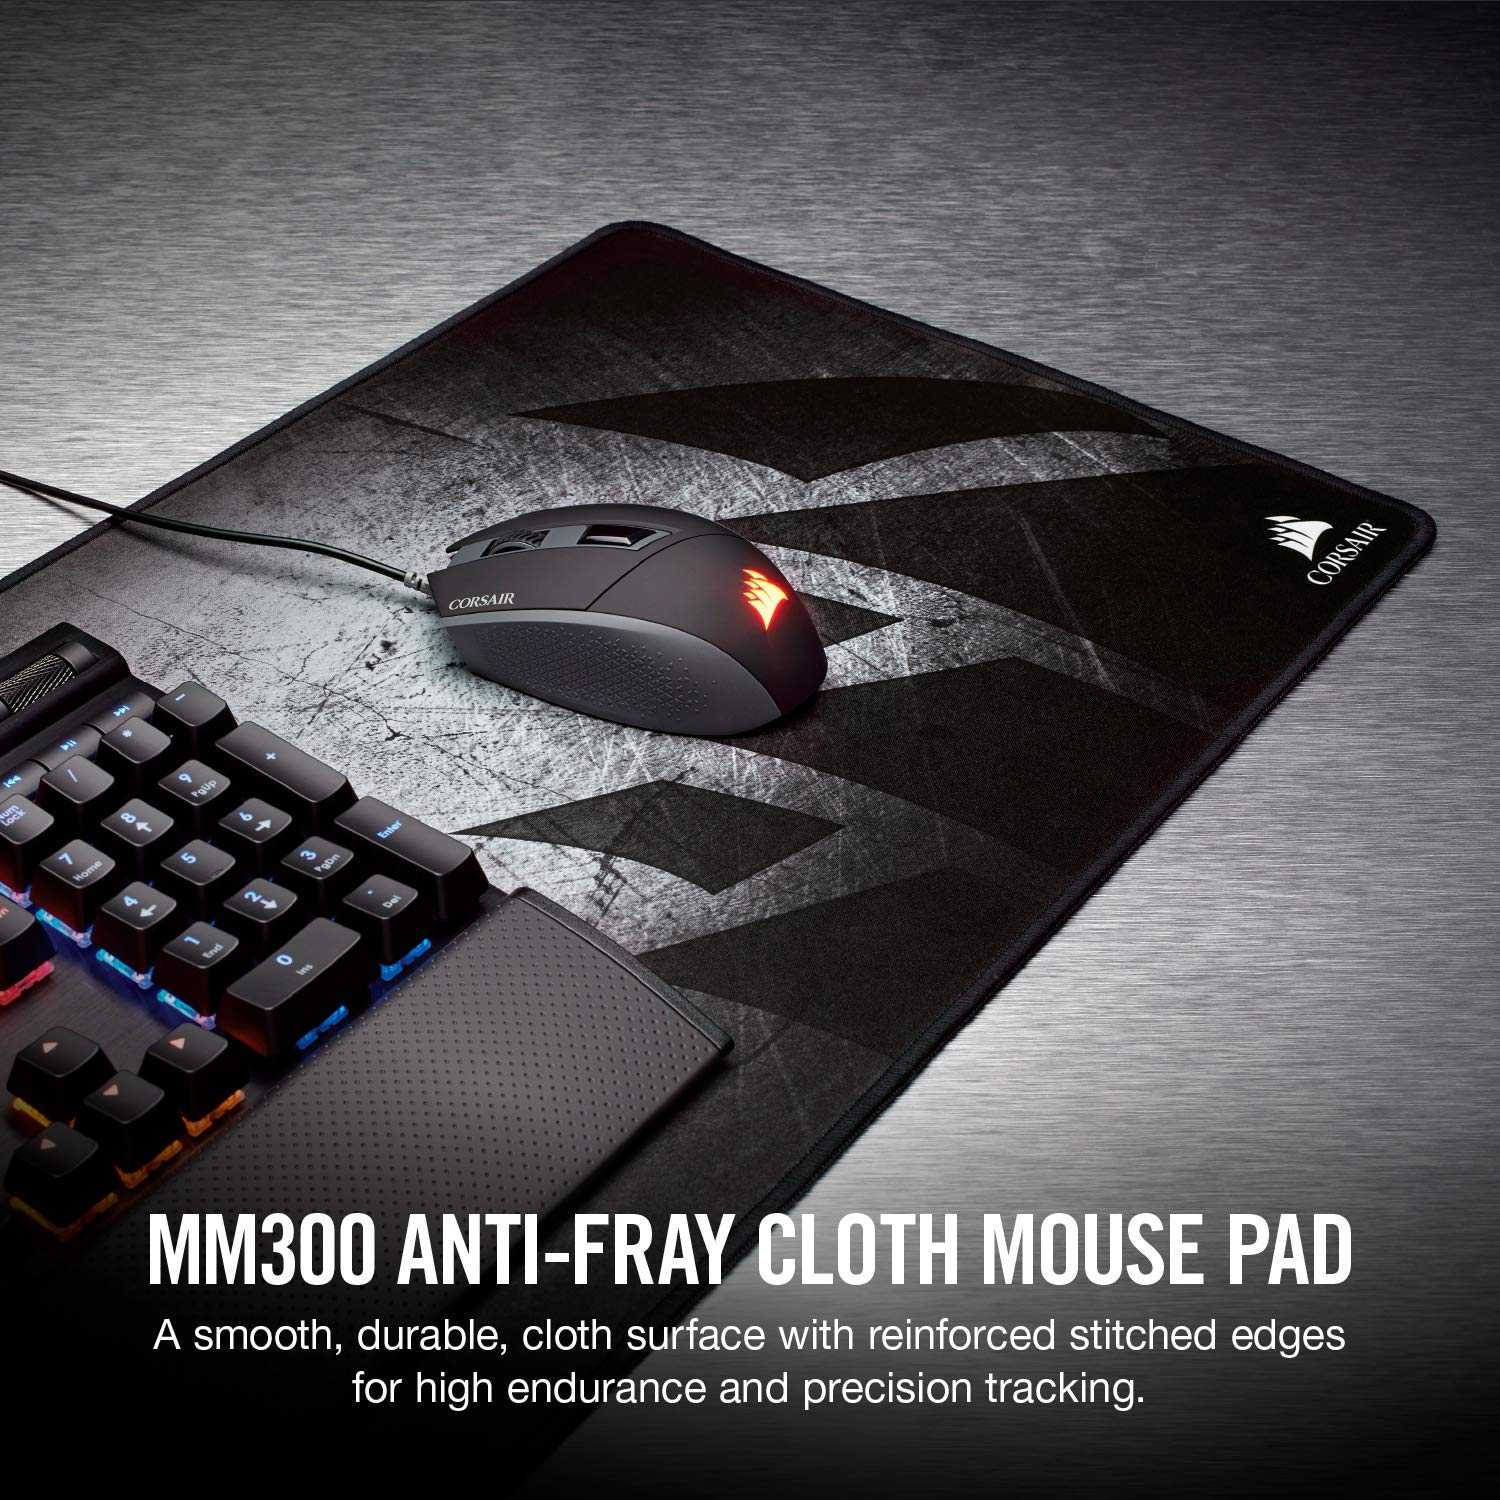 b051731a86a Amazon.com: CORSAIR MM300 - Anti-Fray Cloth Gaming Mouse Pad -  High-Performance Mouse Pad Optimized for Gaming Sensors - Designed for  Maximum Control ...